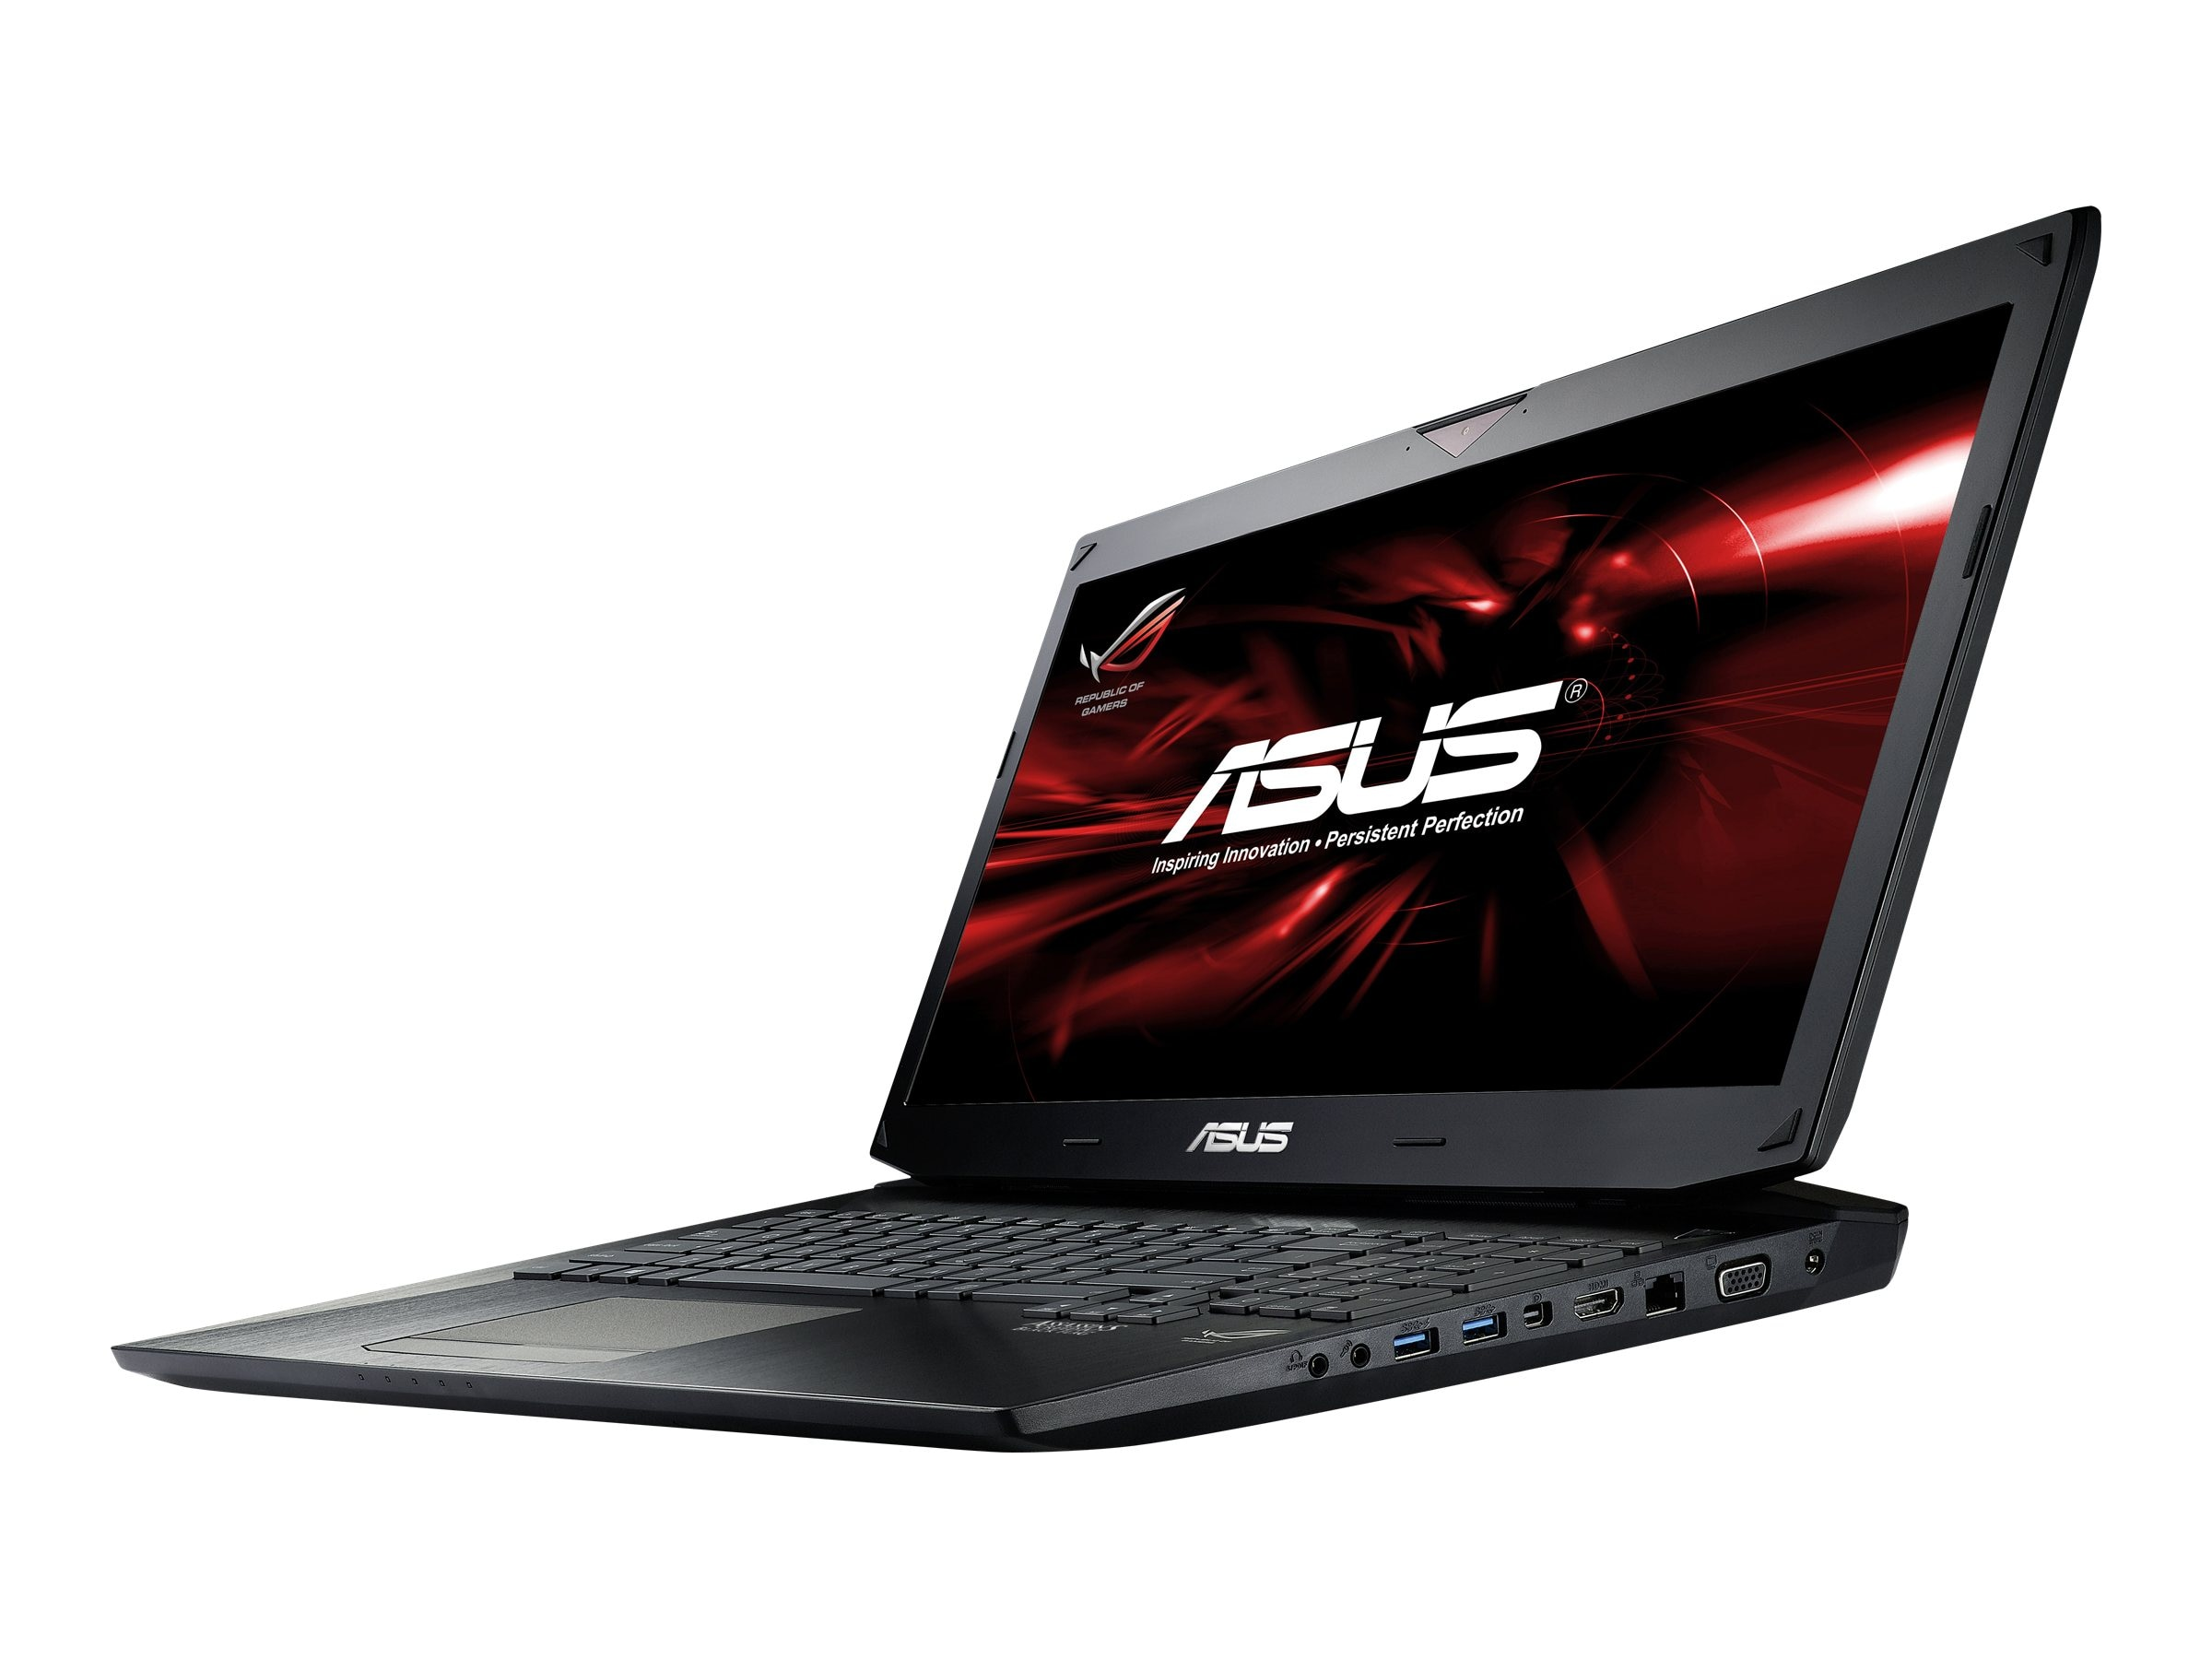 Asus G750JX-RB71 Notebook Core i 17.3 FHD Black, G750JX-RB71, 15699467, Notebooks